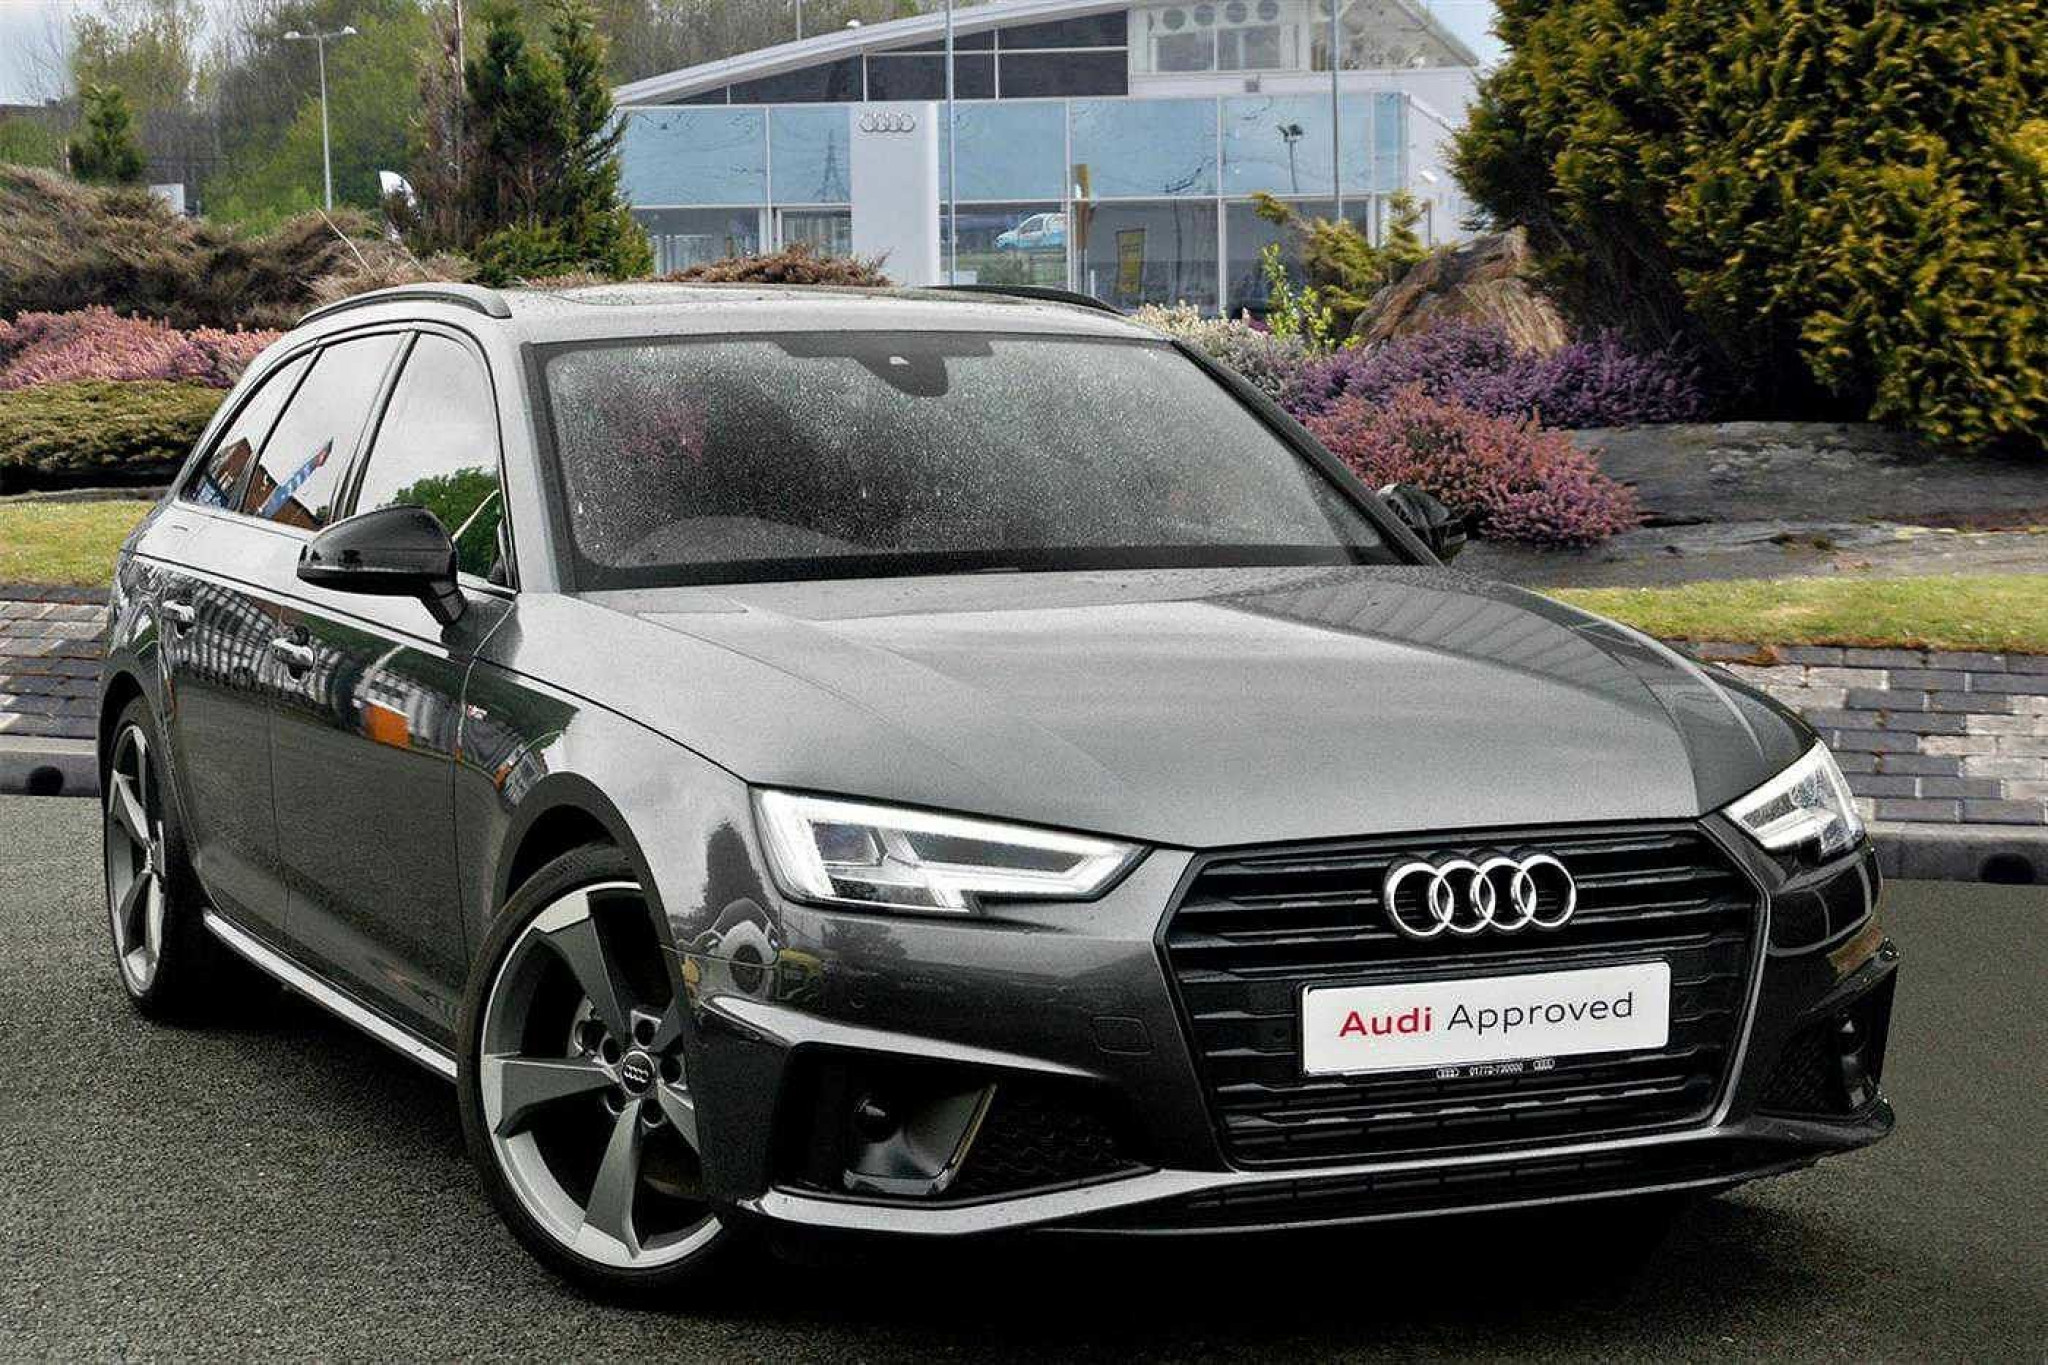 Contact Audi Used Cars Preston Used Cars In Preston Audi Used Cars